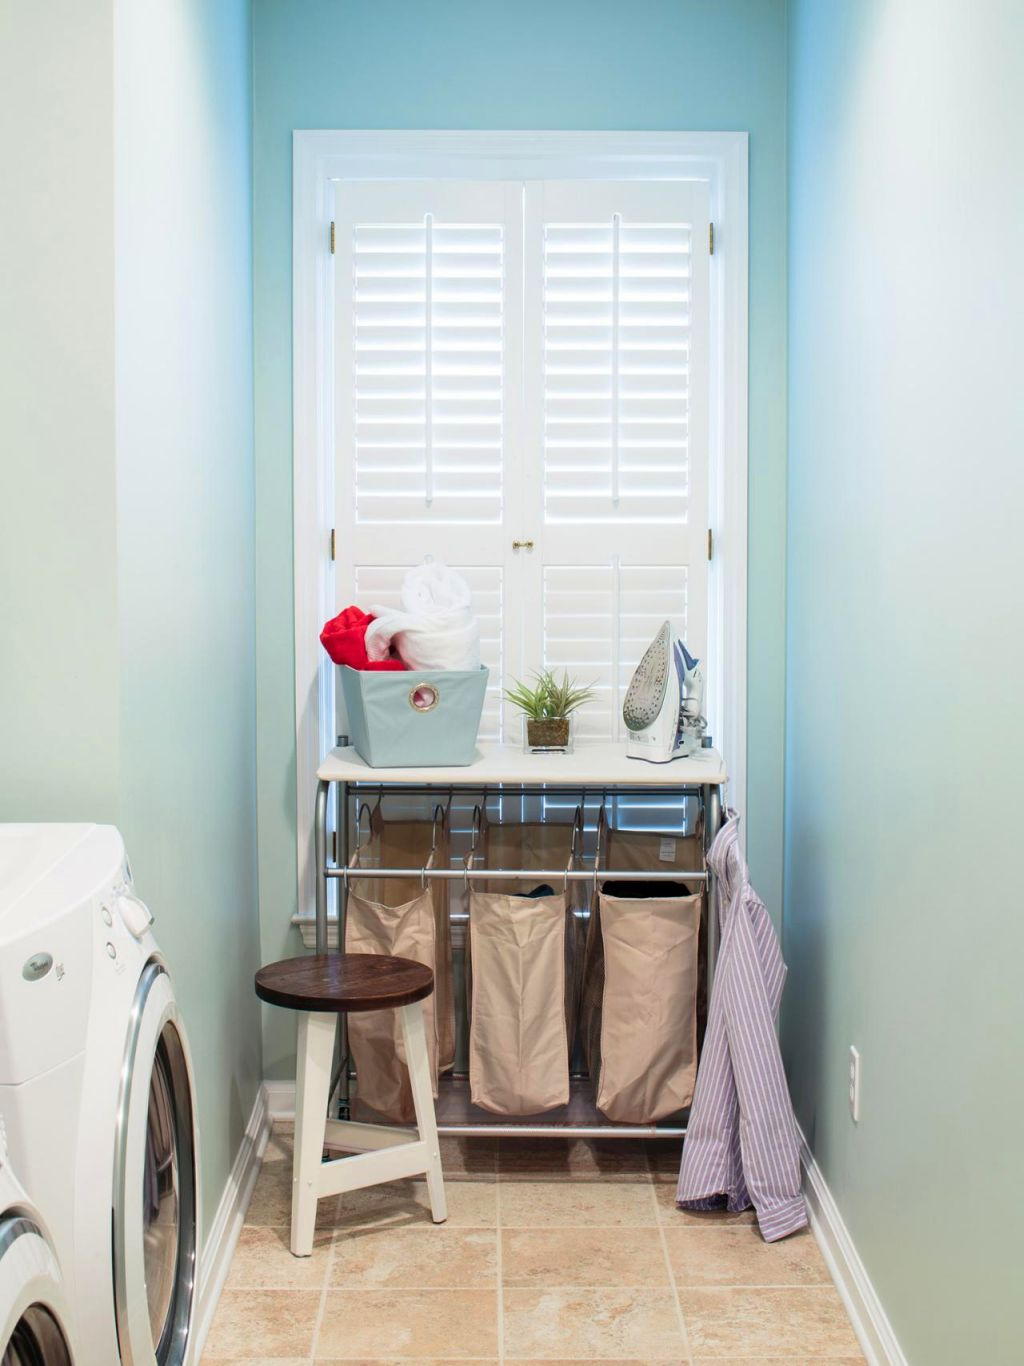 Laundry room clothes hanger racks designs for limited space for Limited space bedroom ideas